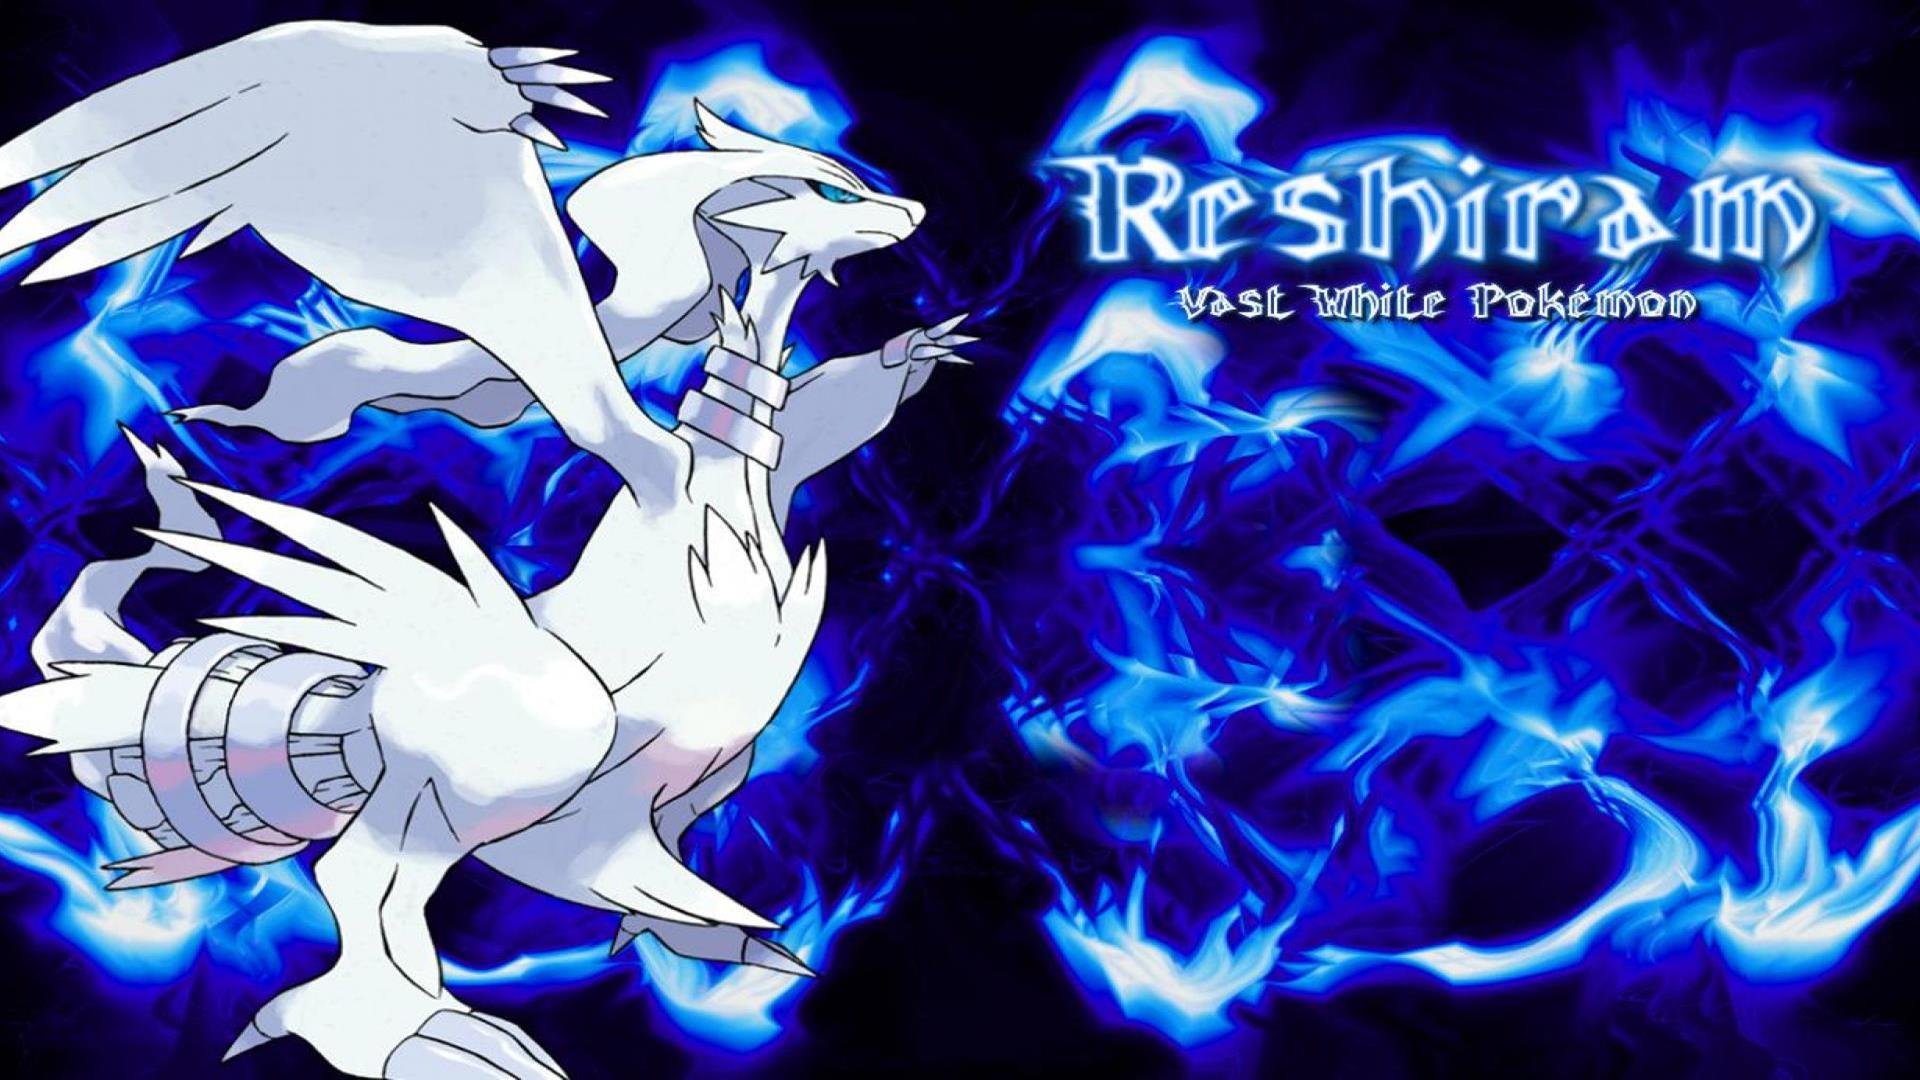 V.257: Reshiram Wallpapers, HD Images of Reshiram, Ultra HD 4K ...